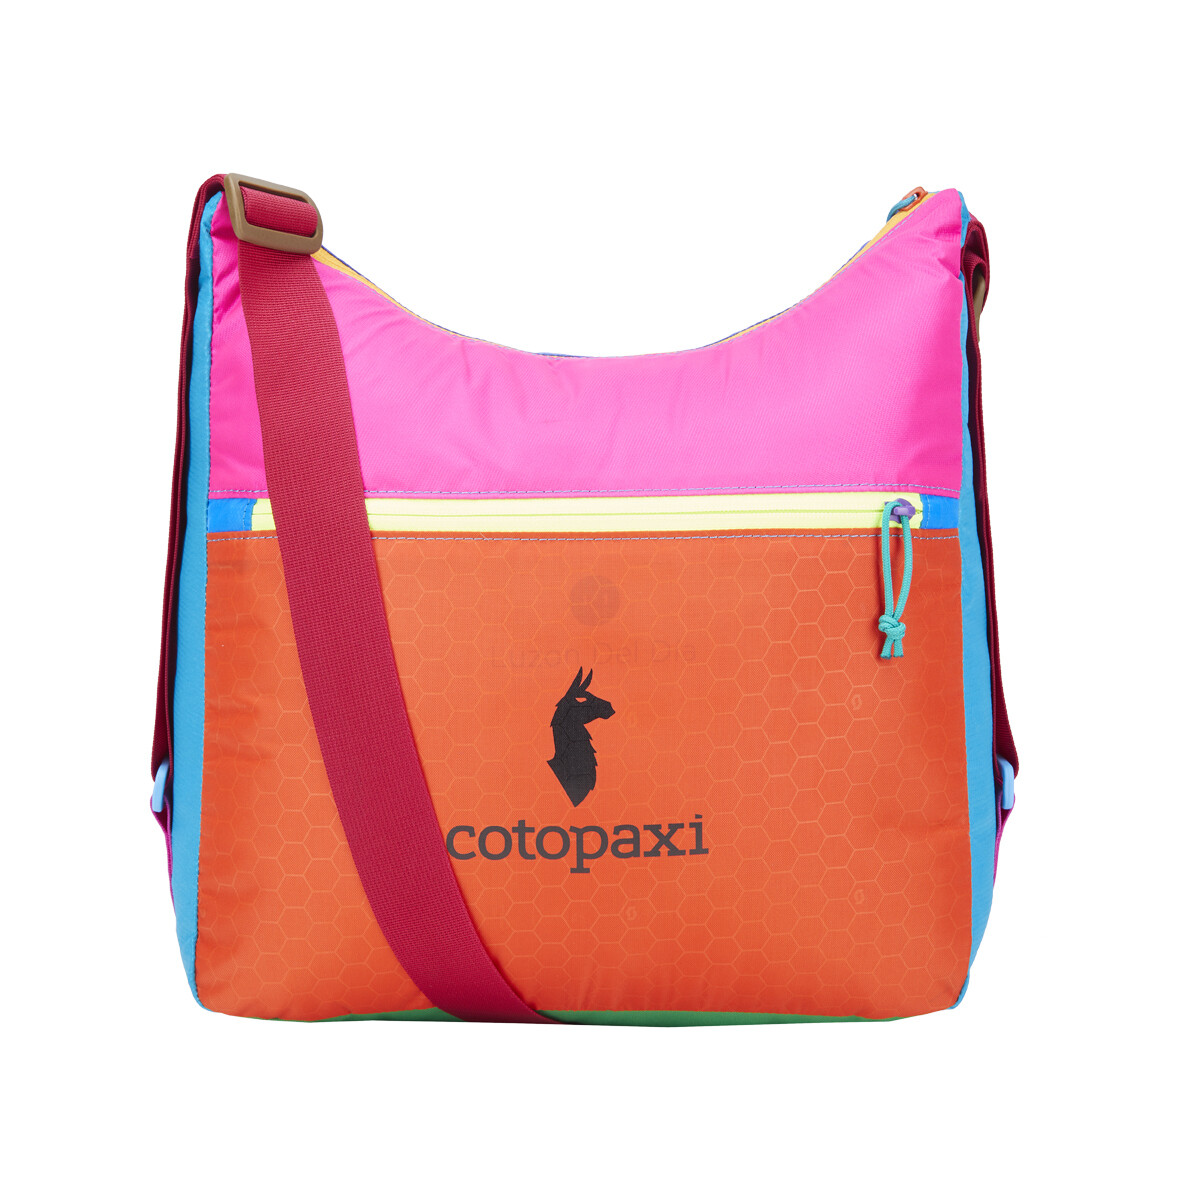 Cotopaxi Taal Convertible Tote